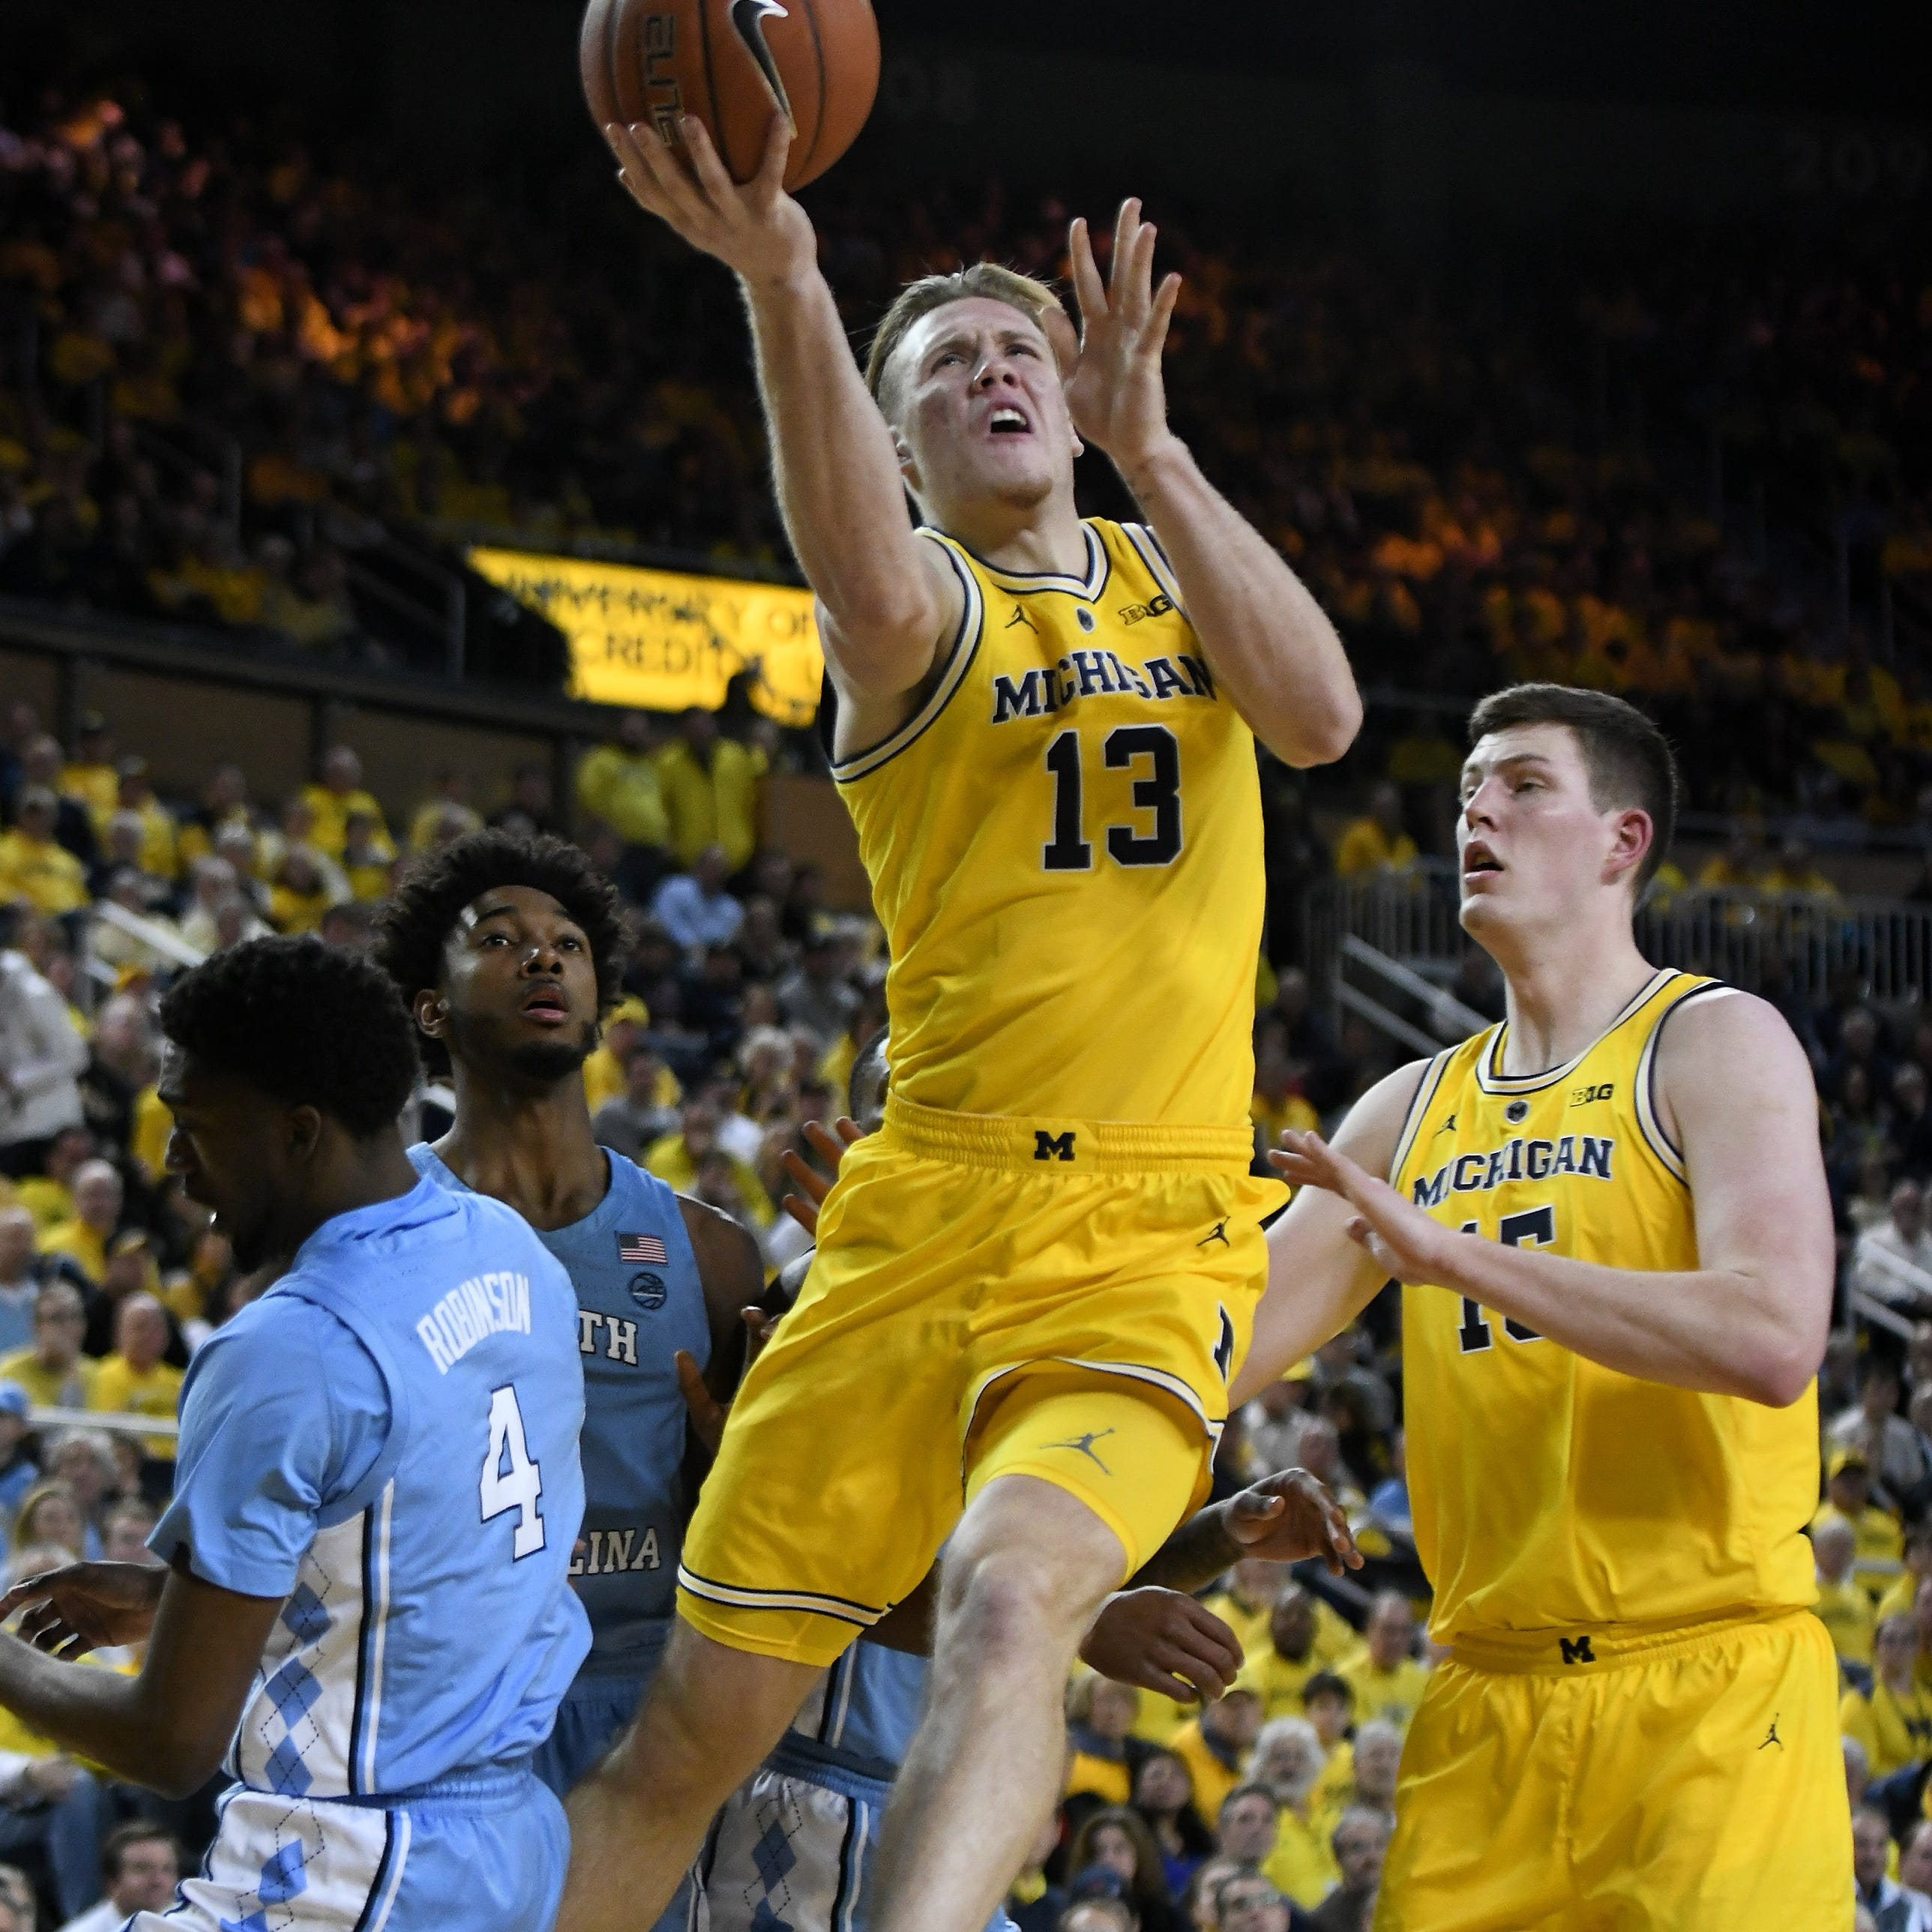 UM's Brazdeikis weighs draft decision, says Beilein departure will be factor